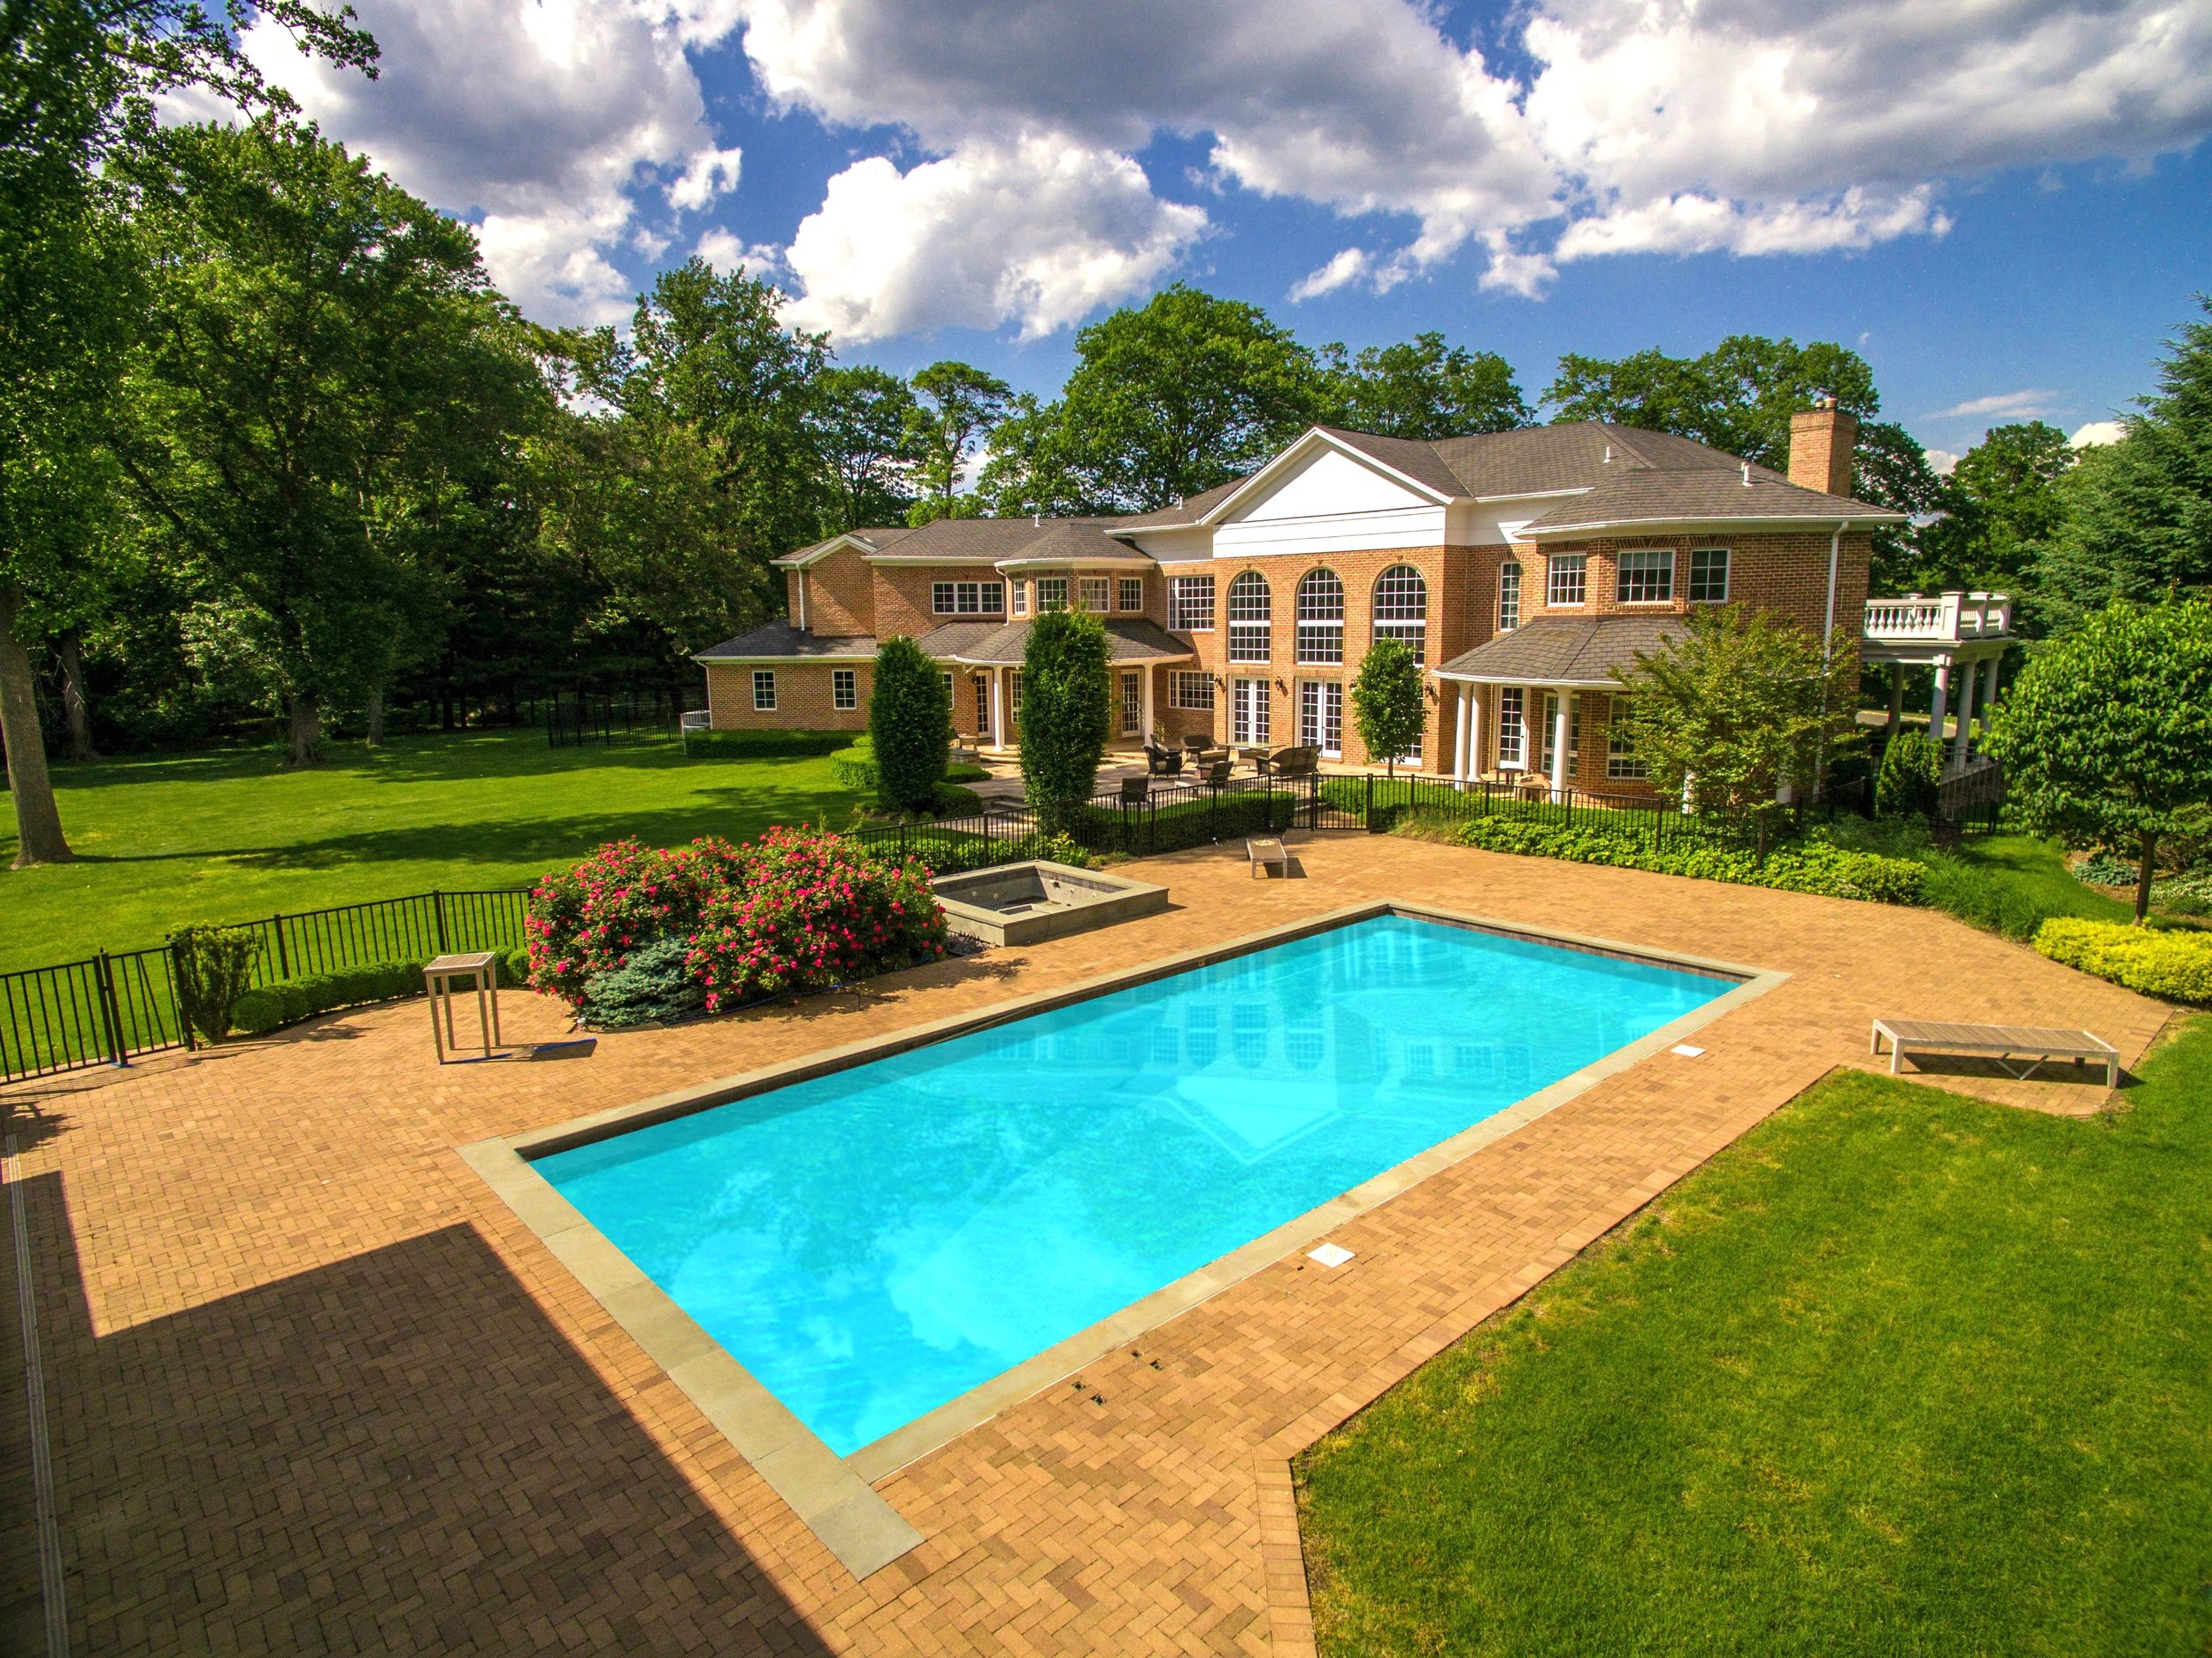 $5.85M | Sands Point, NY